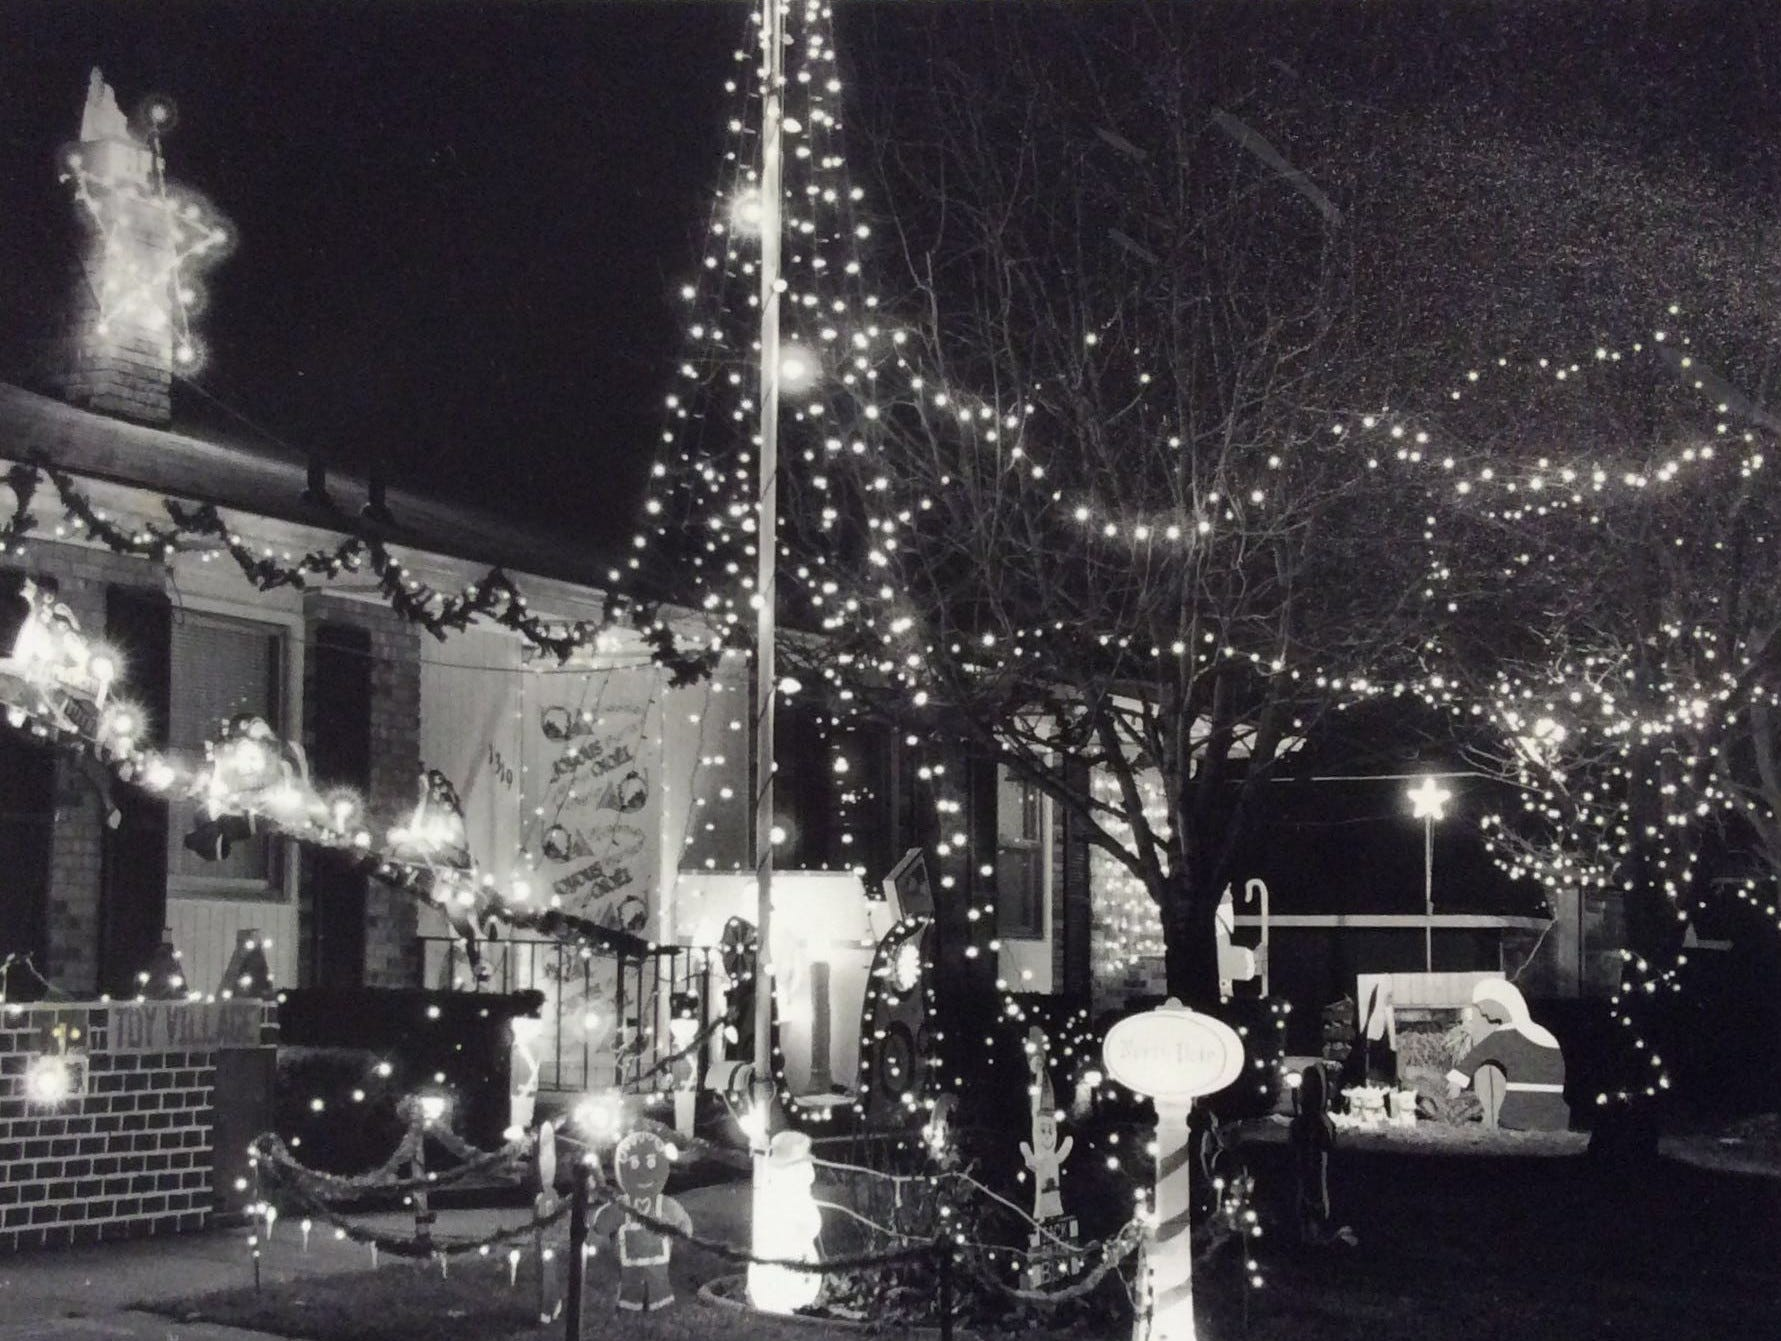 Another view of the home of Bob and Marjorie Kletke, of 1319 Chester Road in Lansing. In addition to lighting up the house, they handed out candy canes and helped Santa collect and answer letters to the North Pole, December 1993.